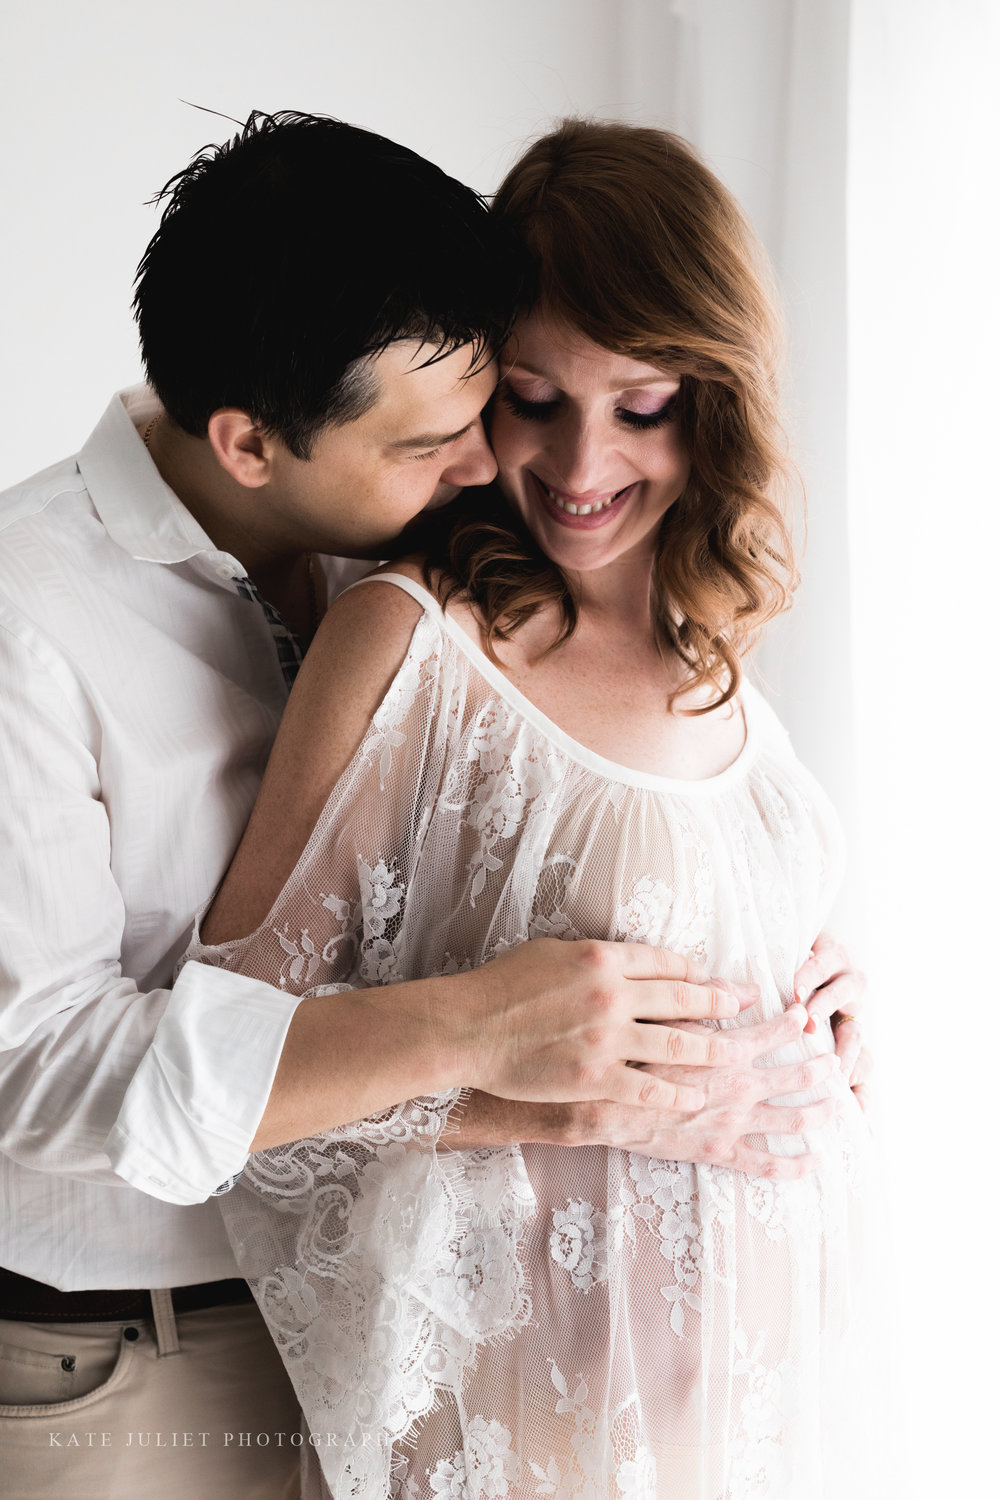 kate juliet photography - maternity - web-17.jpg